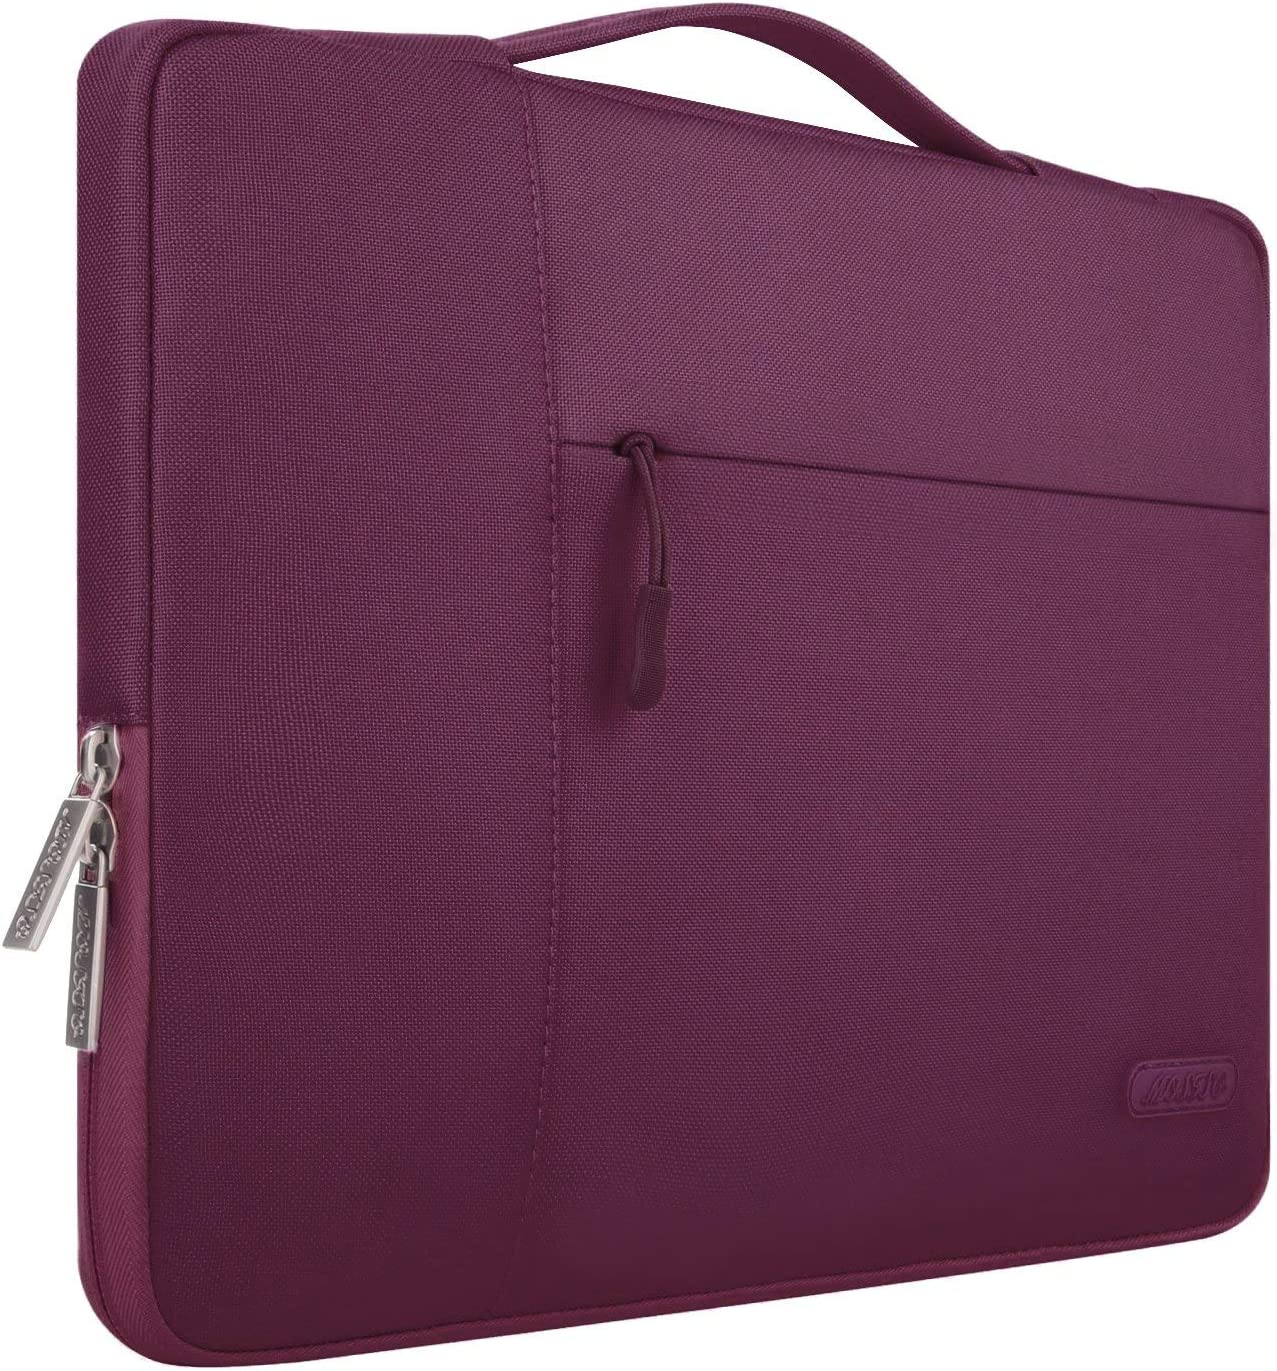 MOSISO Laptop Sleeve Compatible with 15 inch MacBook Pro Touch Bar A1990 A1707, 14 HP Acer Chromebook, 2019 Surface Laptop 3 15, Polyester Multifunctional Briefcase Carrying Bag, Burgundy